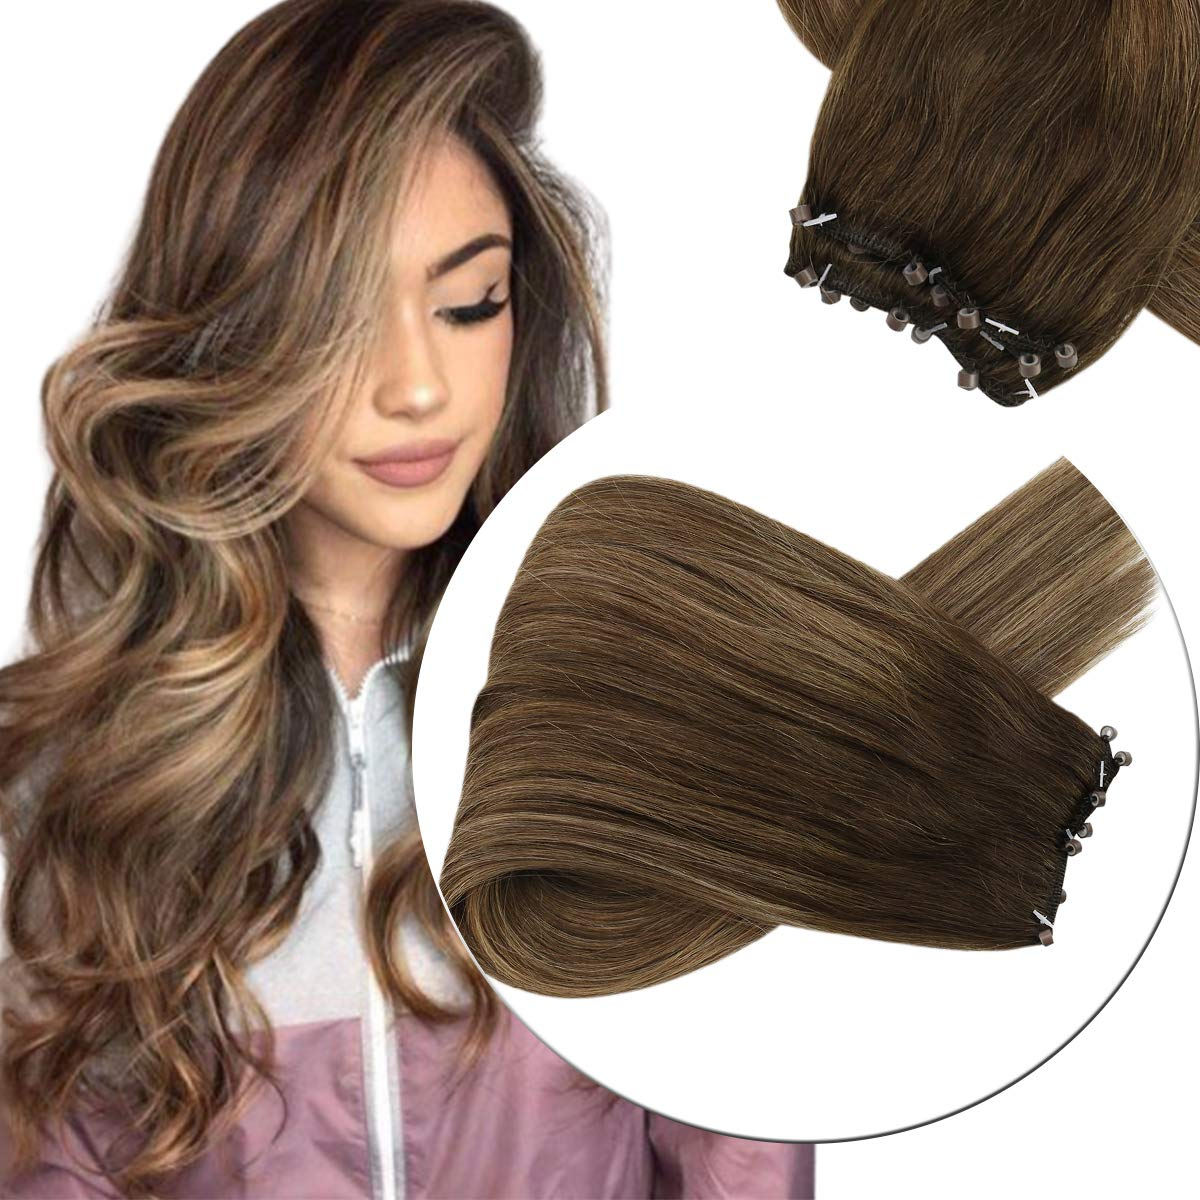 Sunny 20inch Micro Bead Weft Hair Extensions Brown Color #4 Dark Brown Fading to #27 Caramel Blonde Mixed #4 Brown EZ Hair Weft with Micro Beads 12inches Width 50g Weight